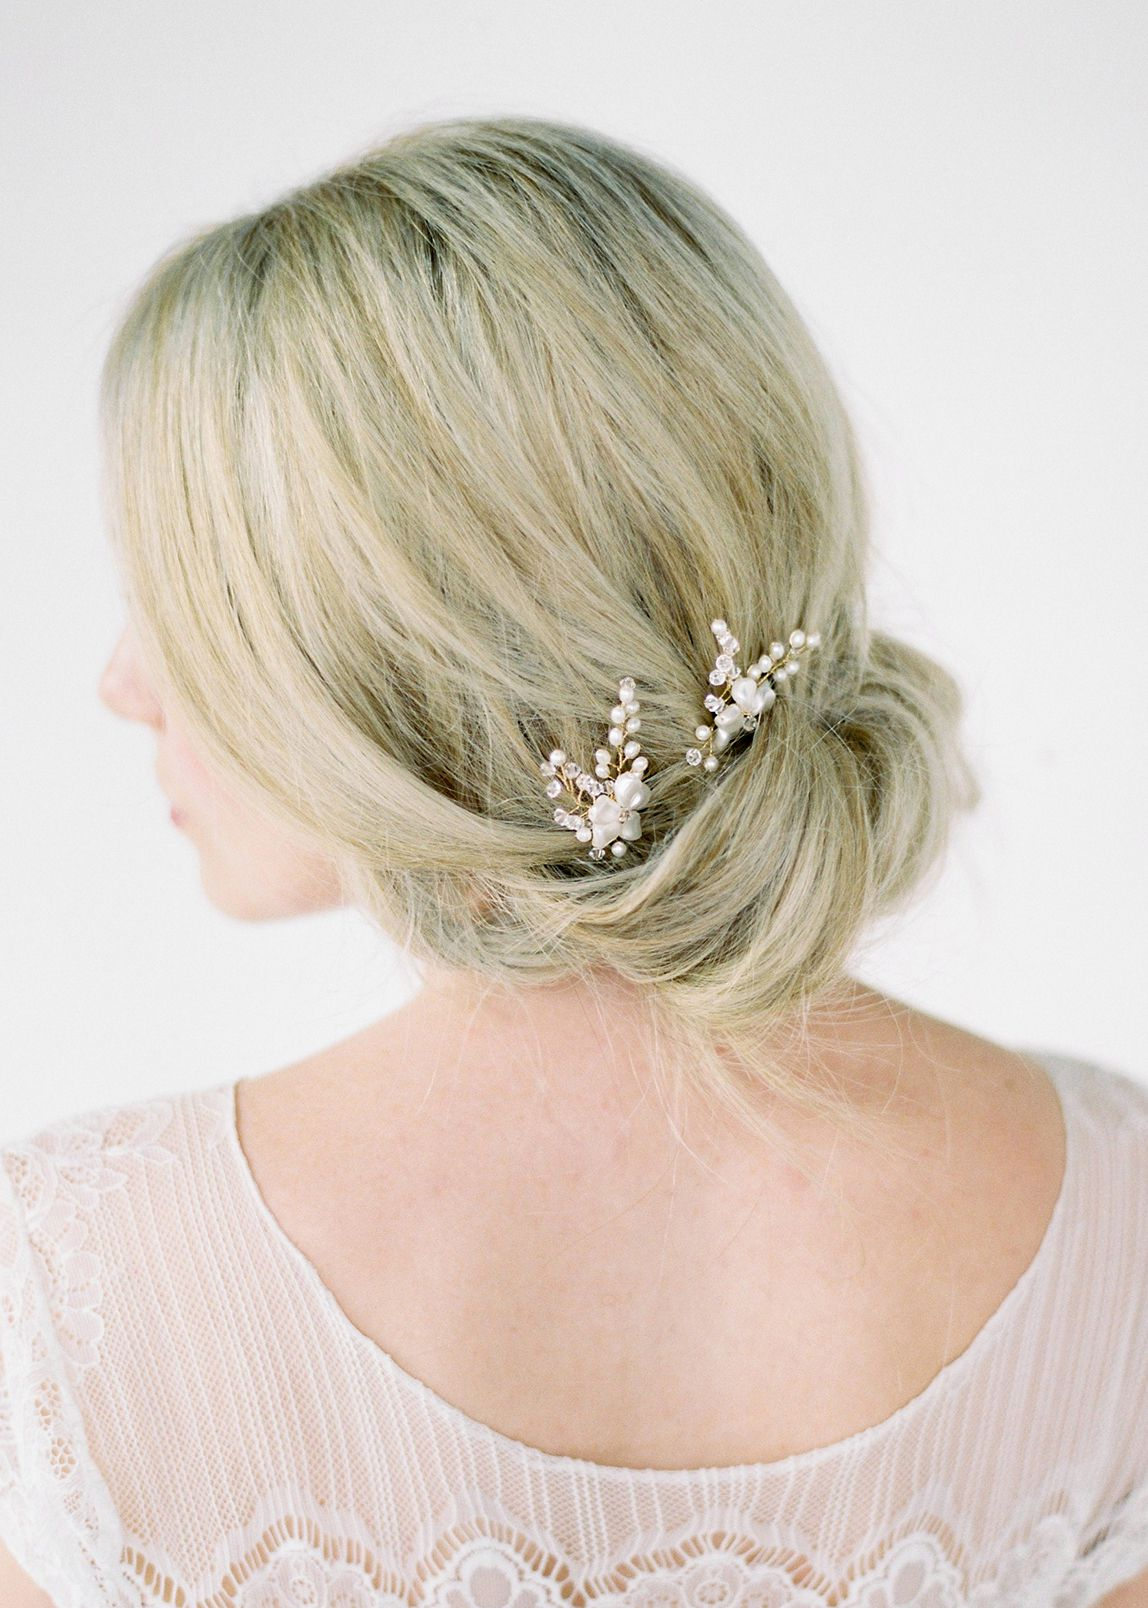 The Laura wedding hair pieces offer romantic and whimsical styling with minimal effort. These simple yet dainty hair pins are all about timeless beauty.